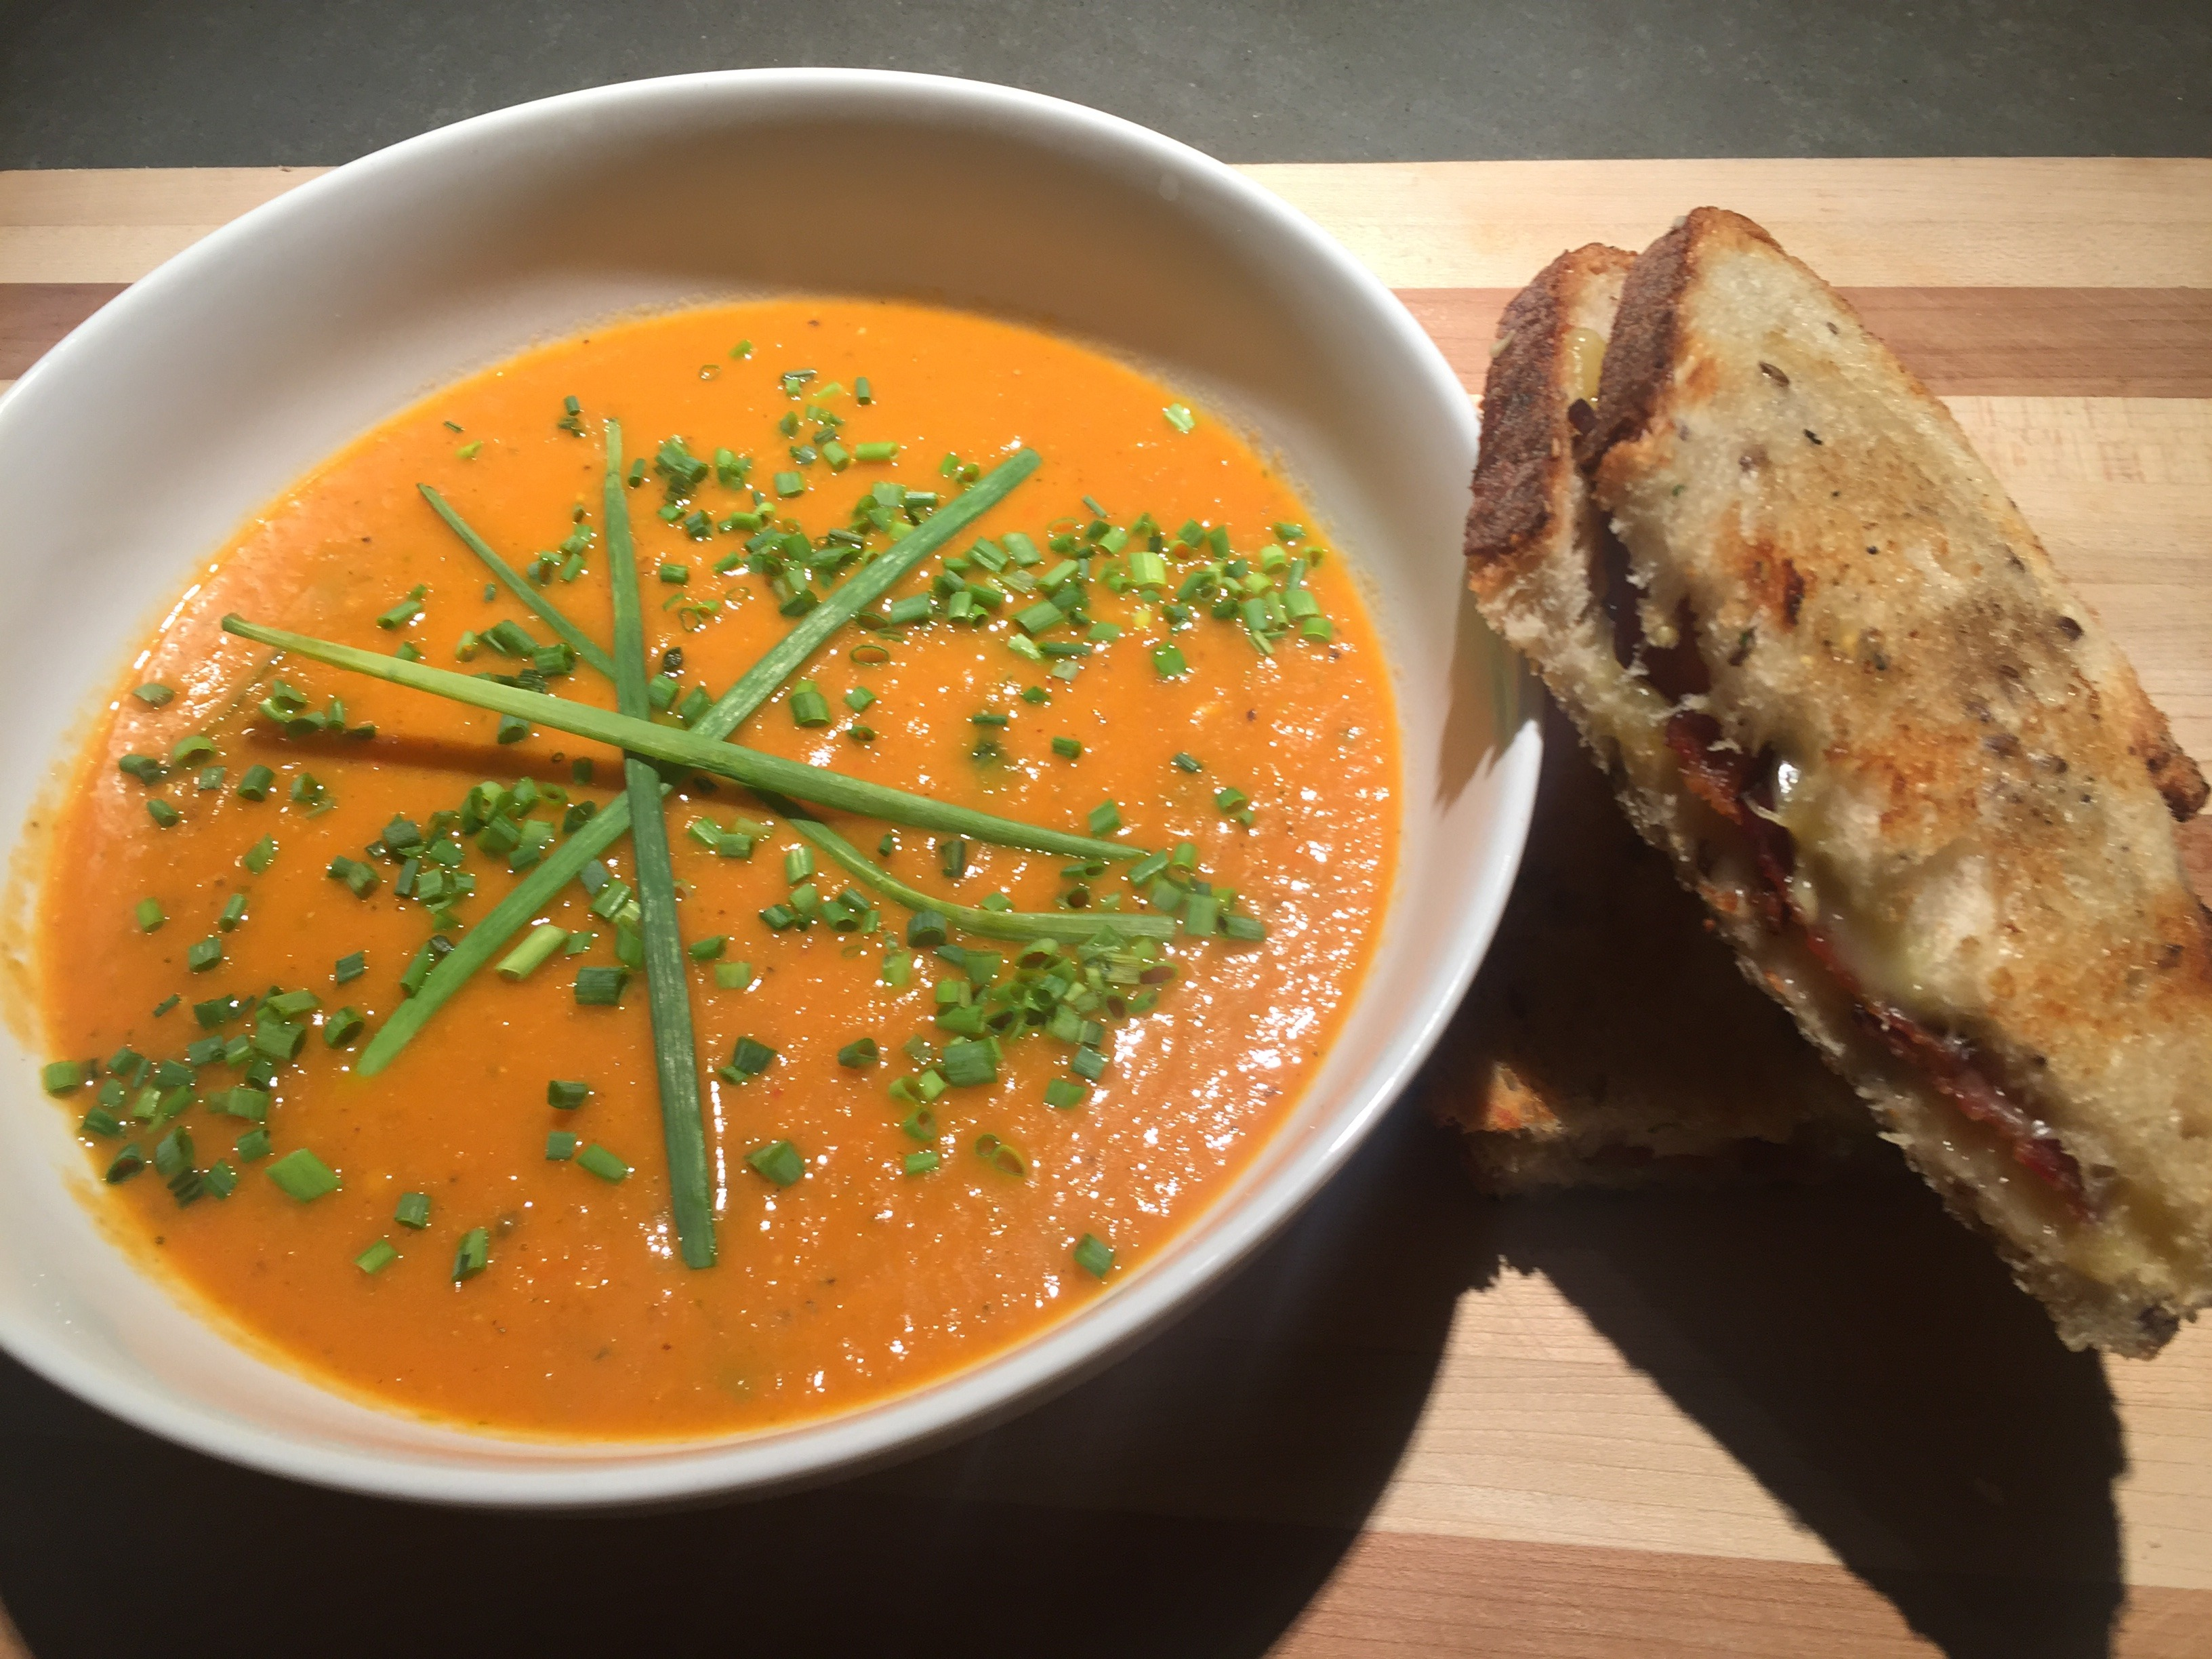 classic combossummertime soup and grilled cheeseeat.breathe.love